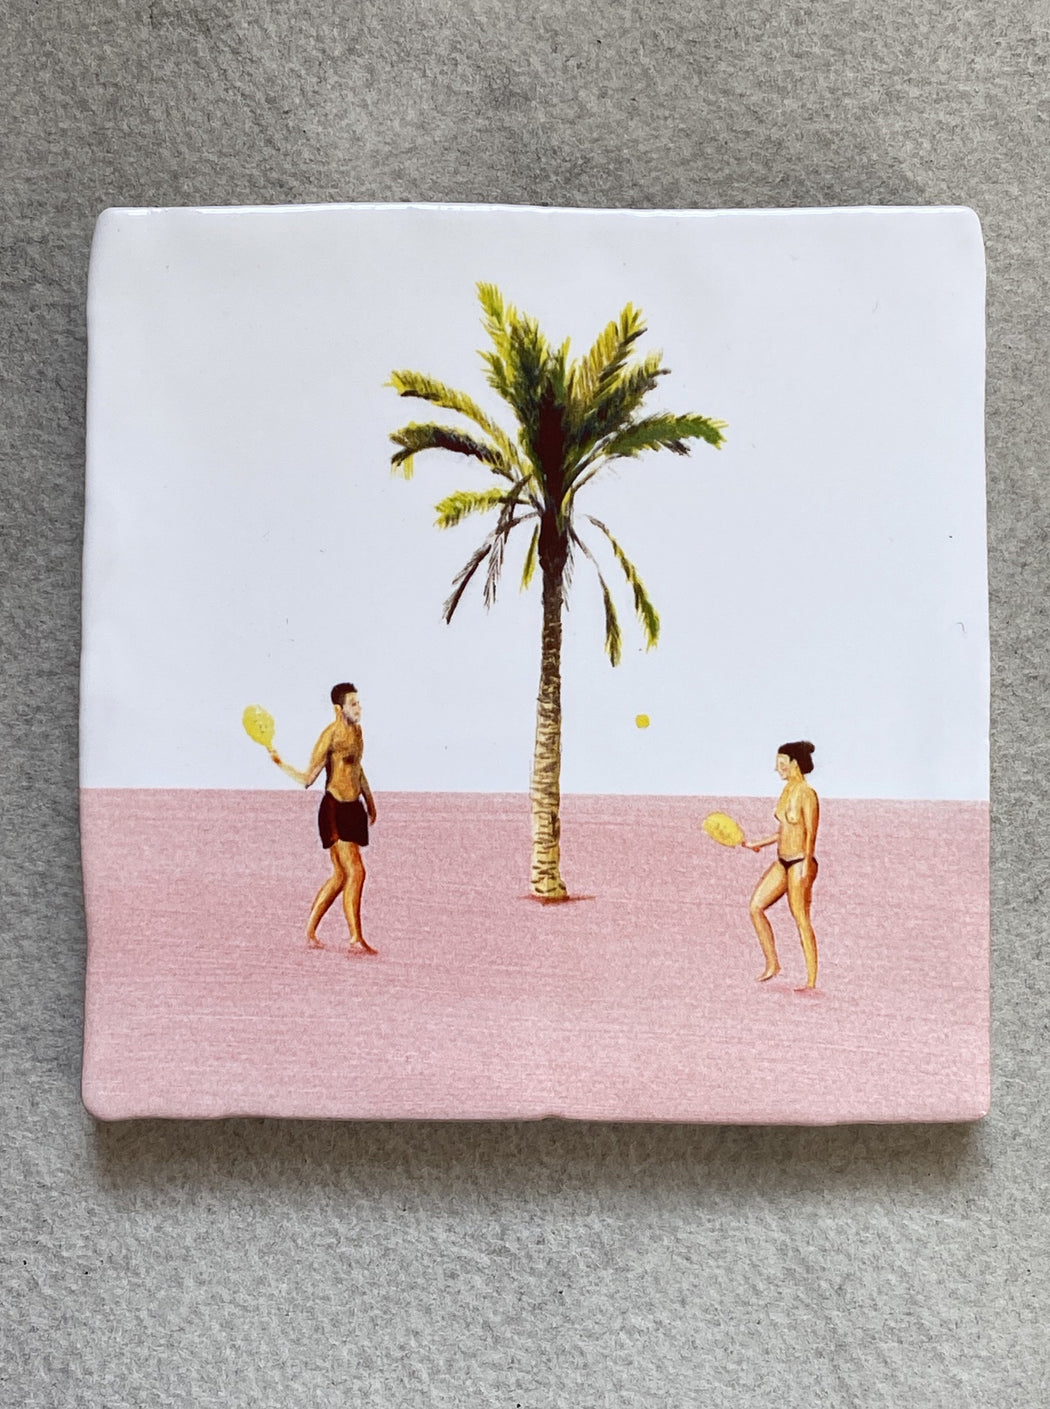 """On a Deserted Island"" Story Tile"